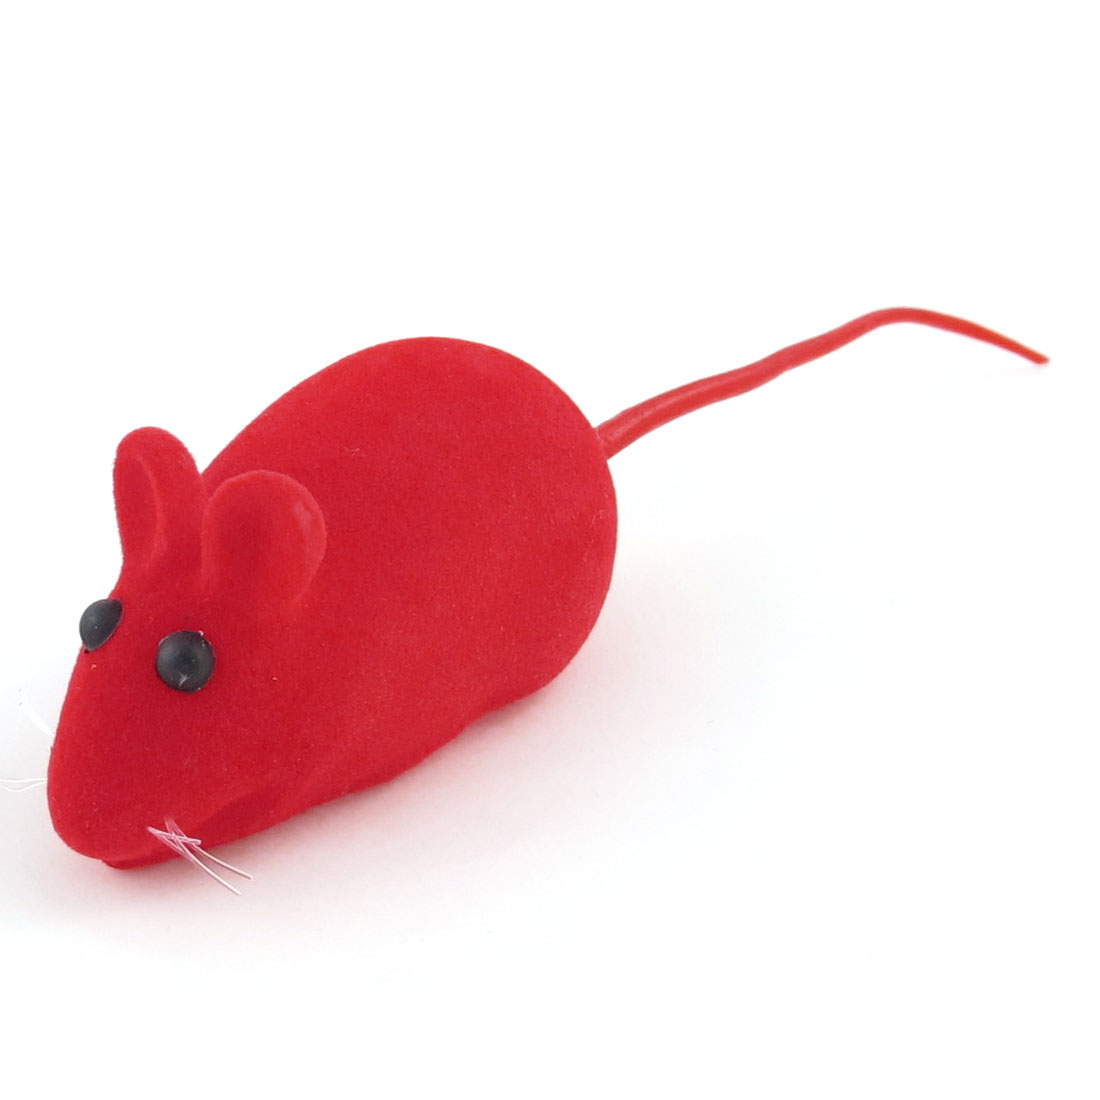 Unique Industries Red Mouse Shape Black Eyes Squeaky Chew Toy for Pet Dog